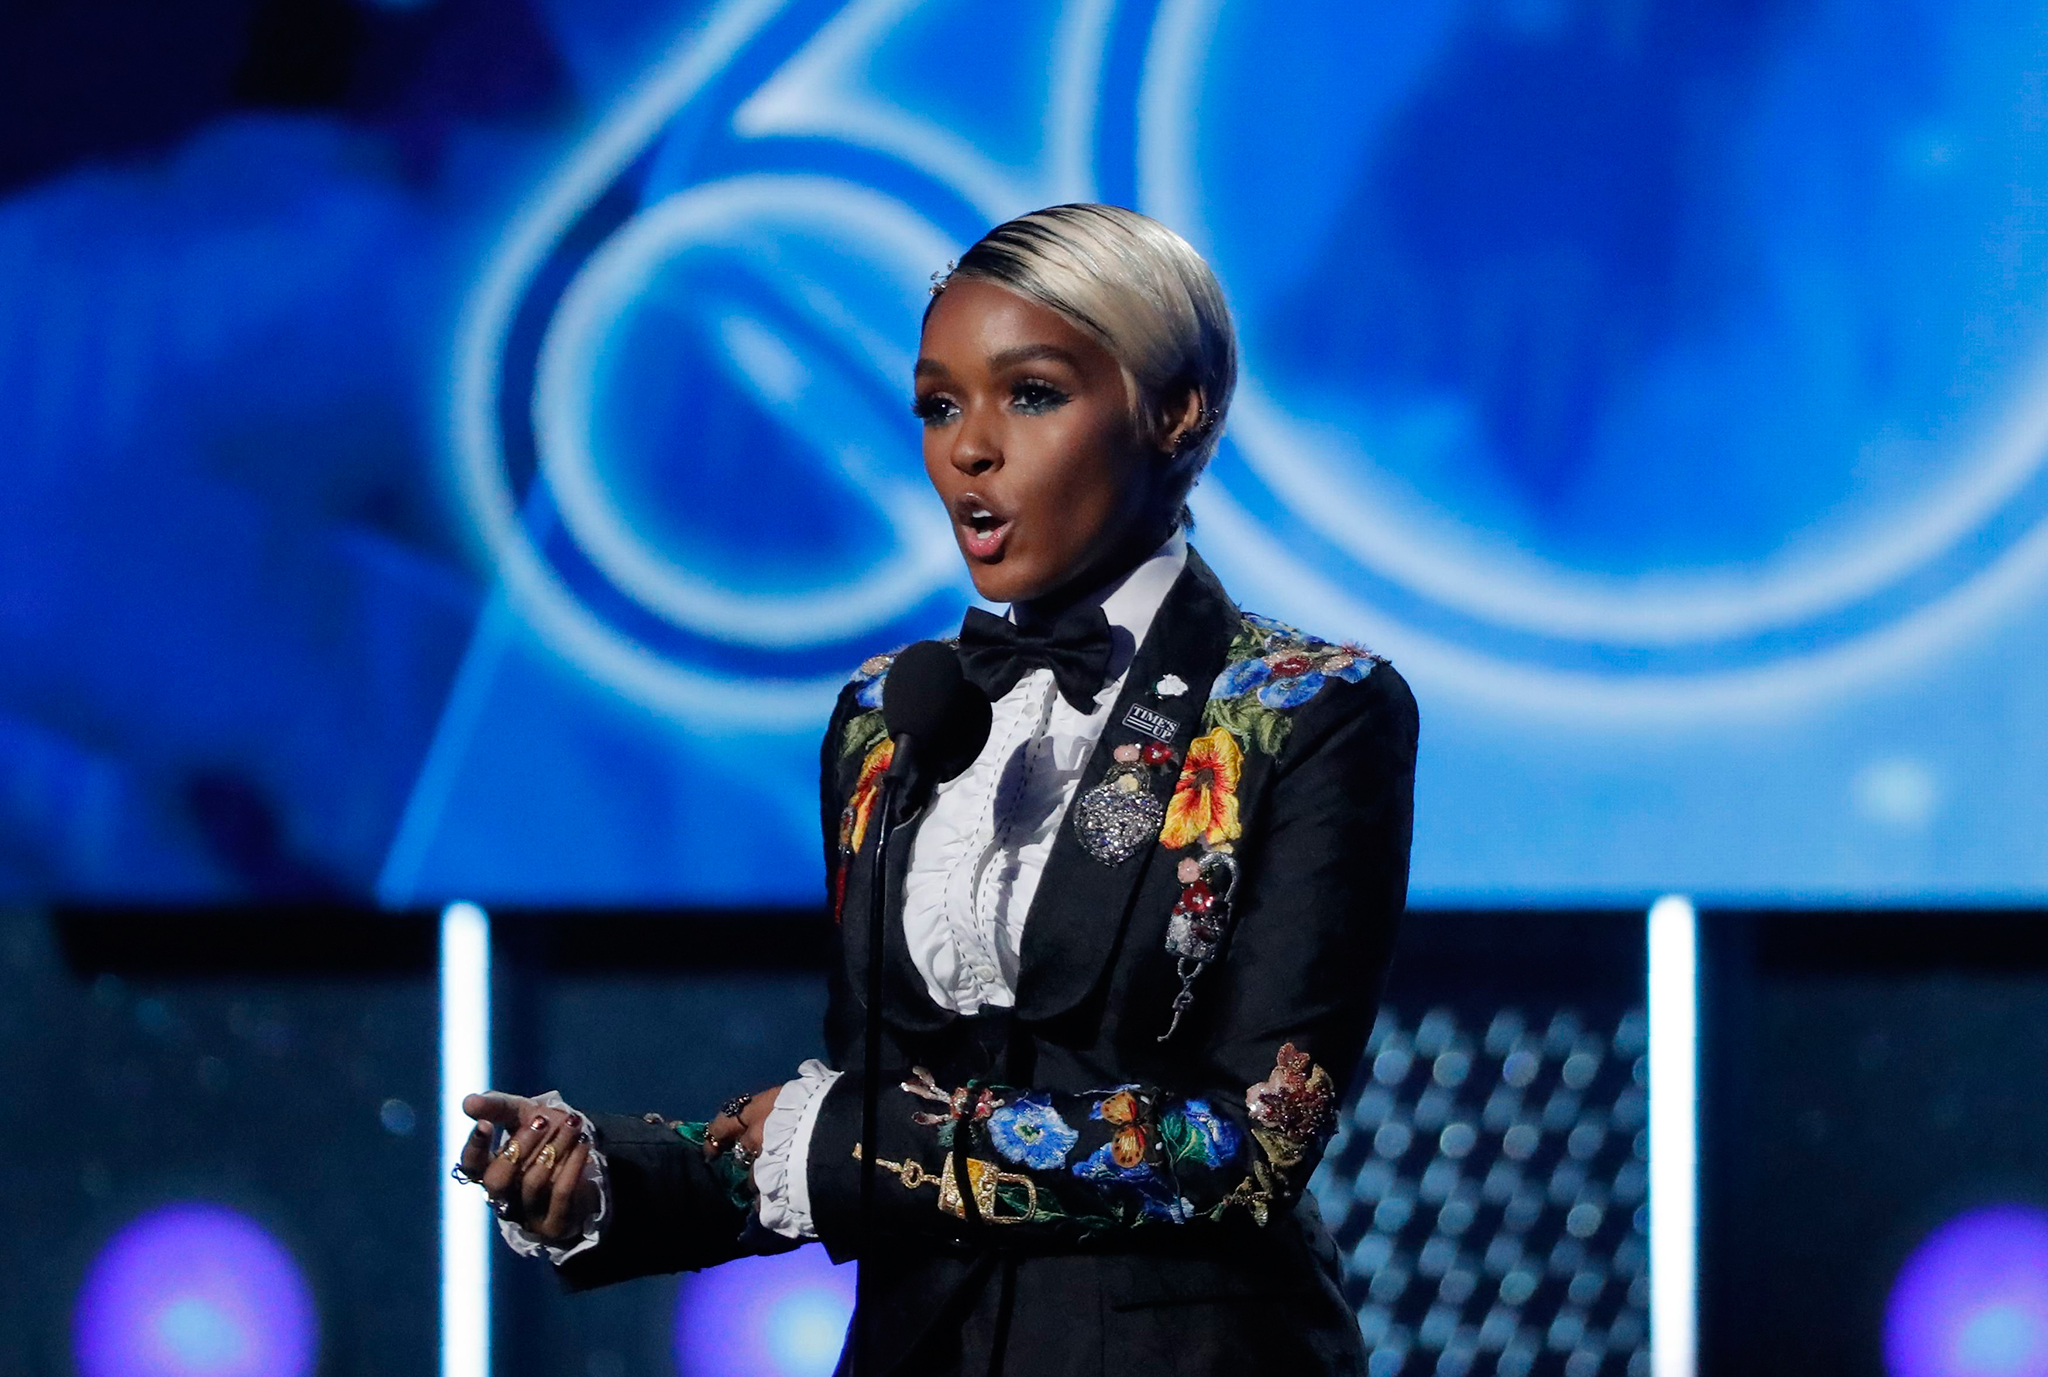 Janelle Monae introduces a performance by Kesha at the 60th Annual Grammy Awards, Jan. 28, 2018.